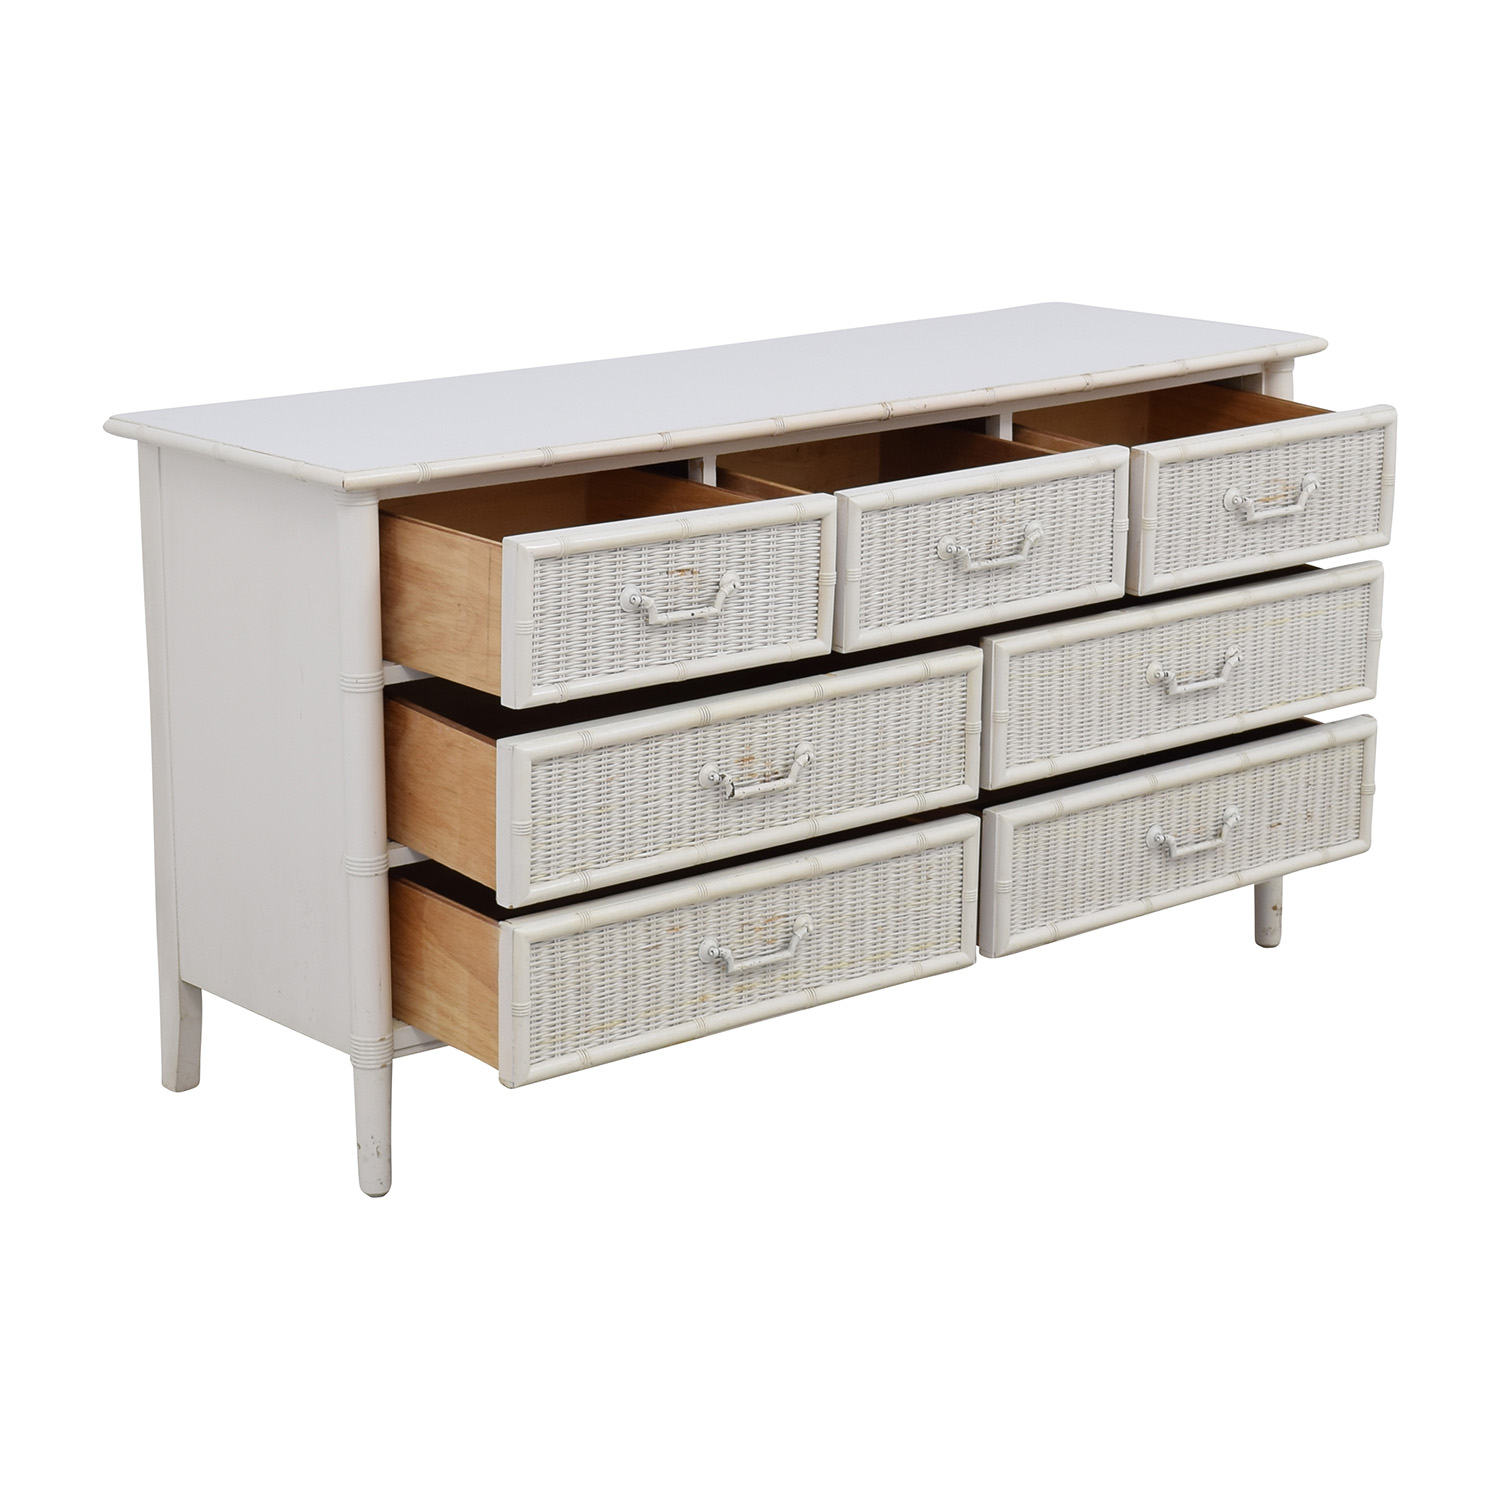 Wicker dresser for sale pier one dresser 6 drawer wood for Used dressers for sale near me